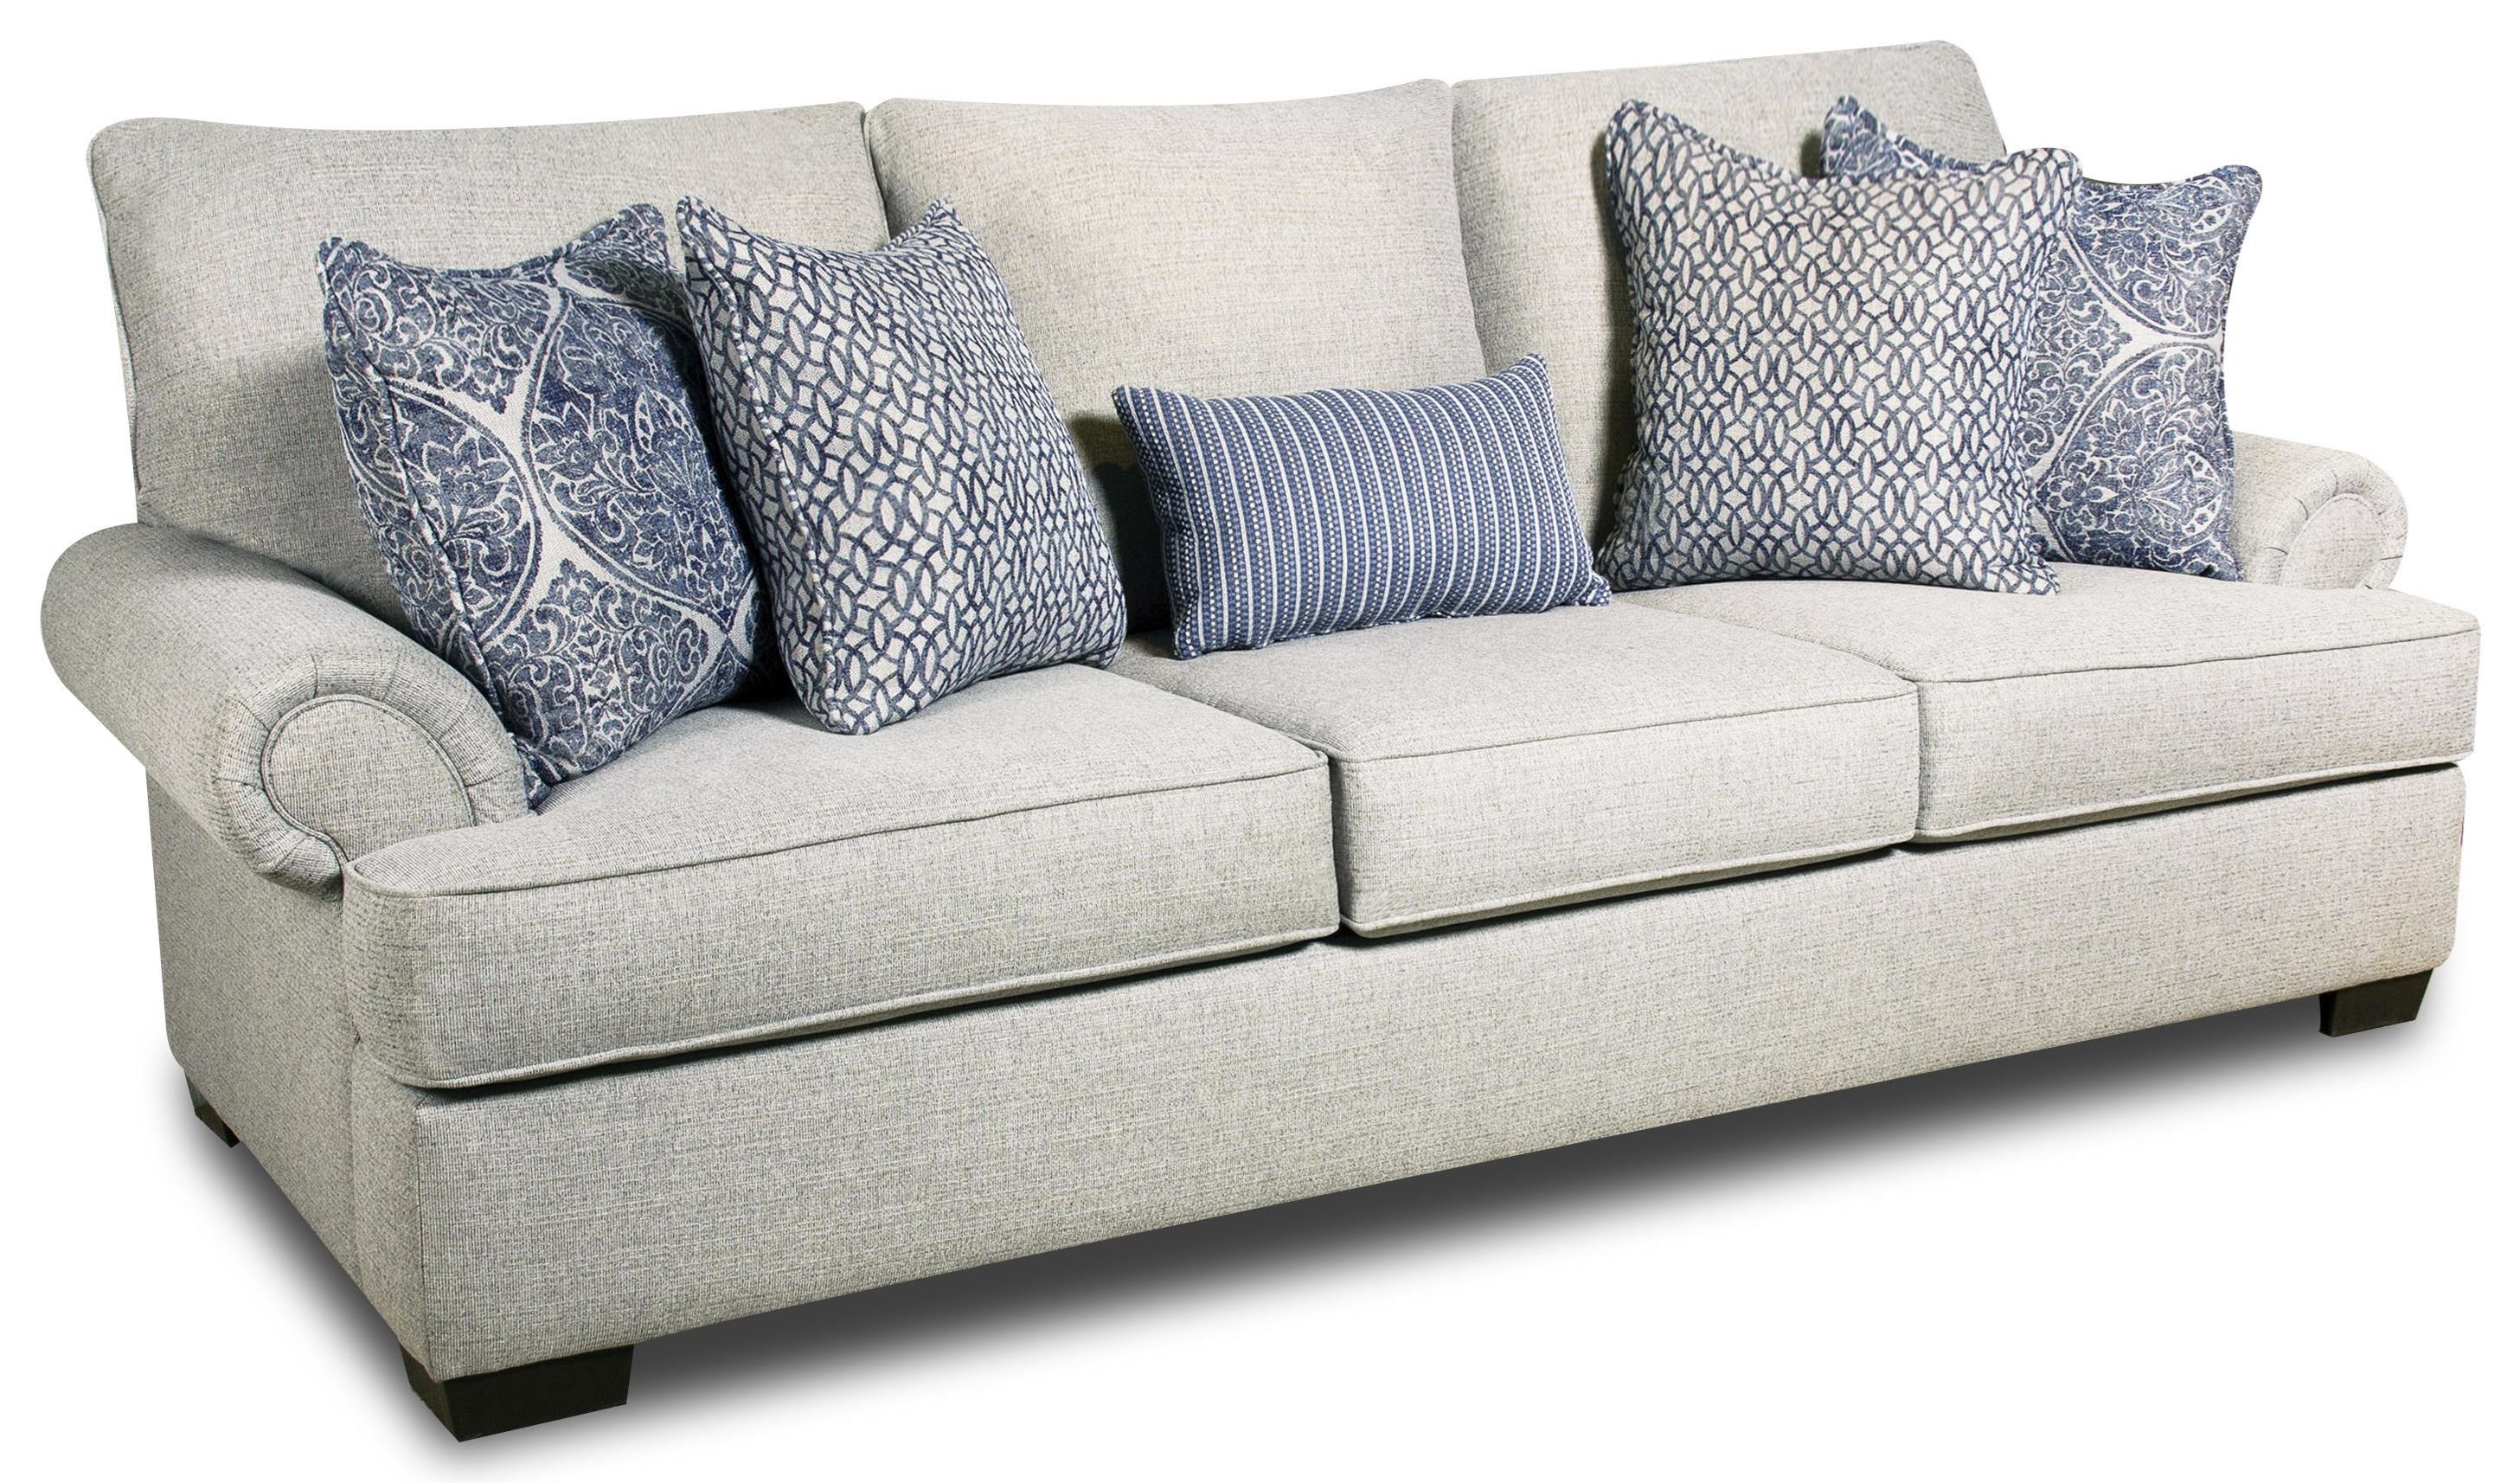 Azure Sofa by Behold Home at Darvin Furniture